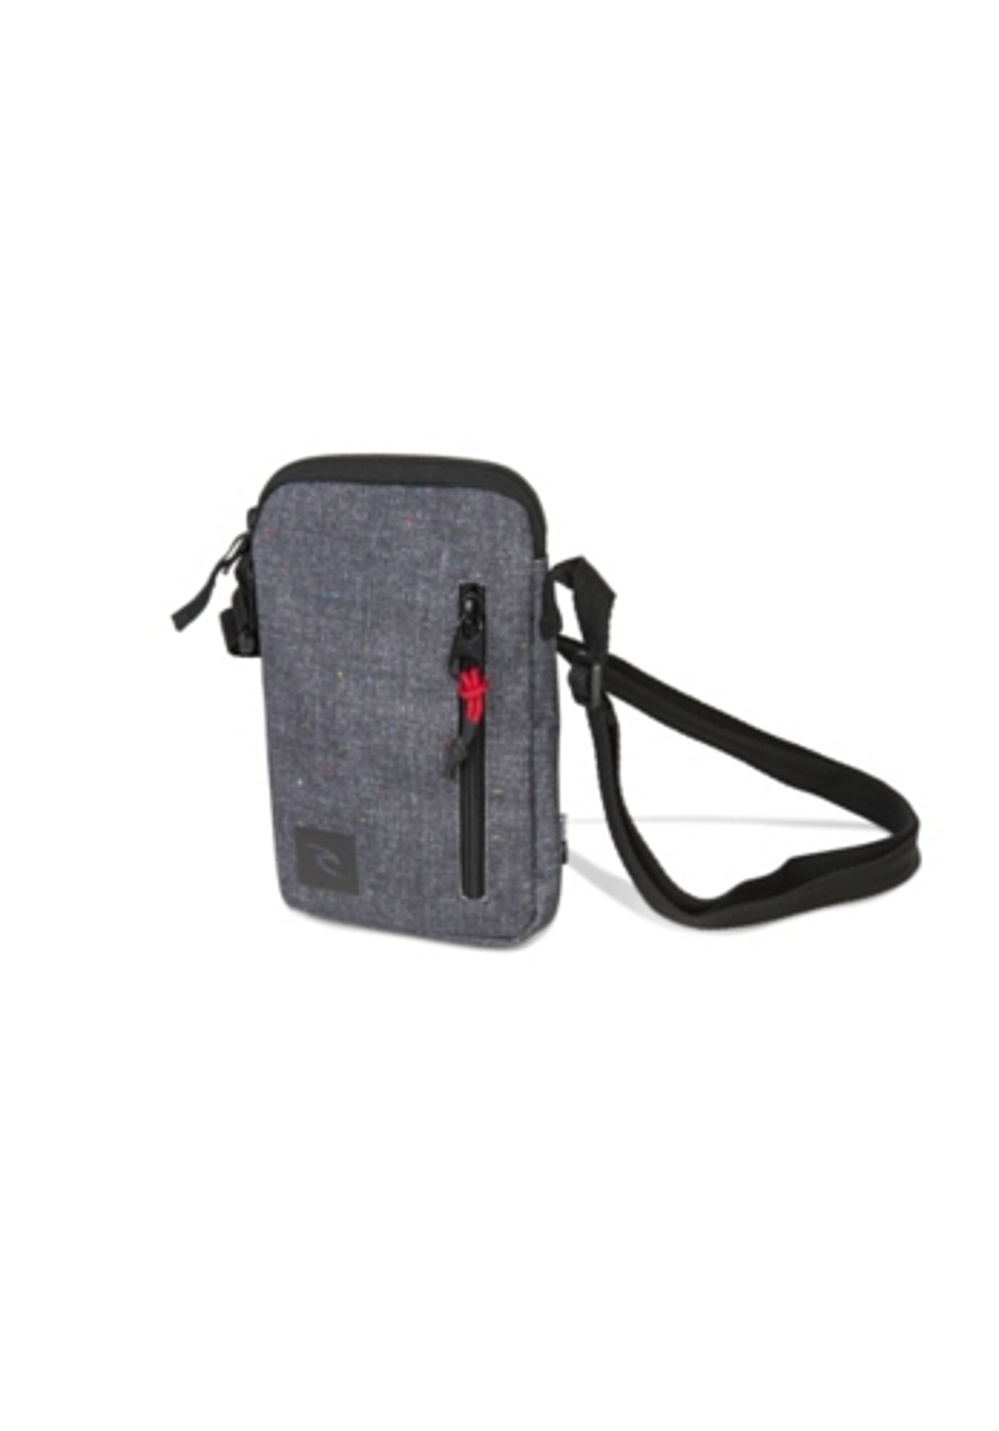 Rip Curl Slim - Messenger Bag for Men - Grey - Planet Sports